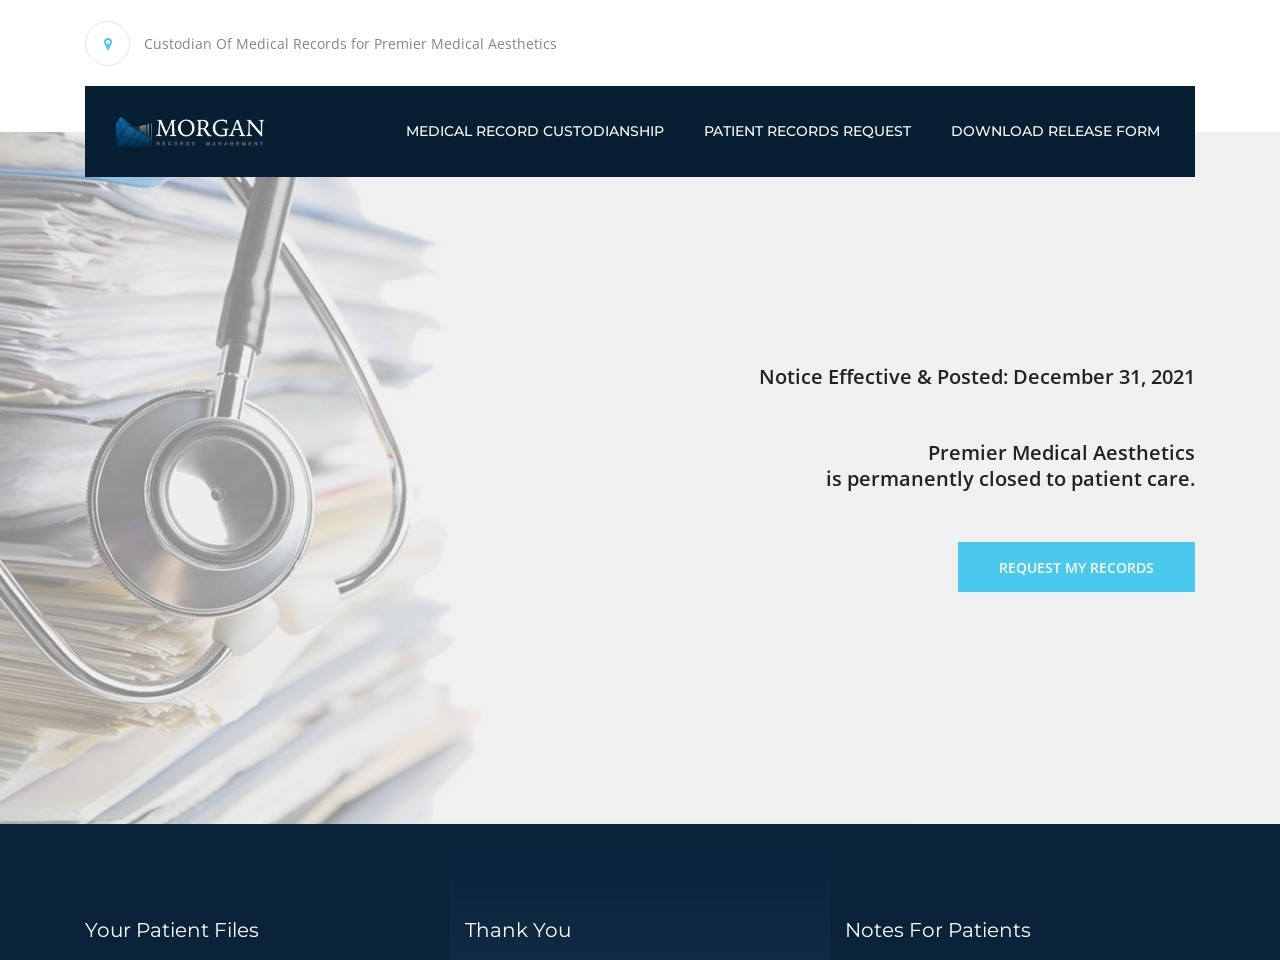 www.premiermedaesthetics.com screenshot